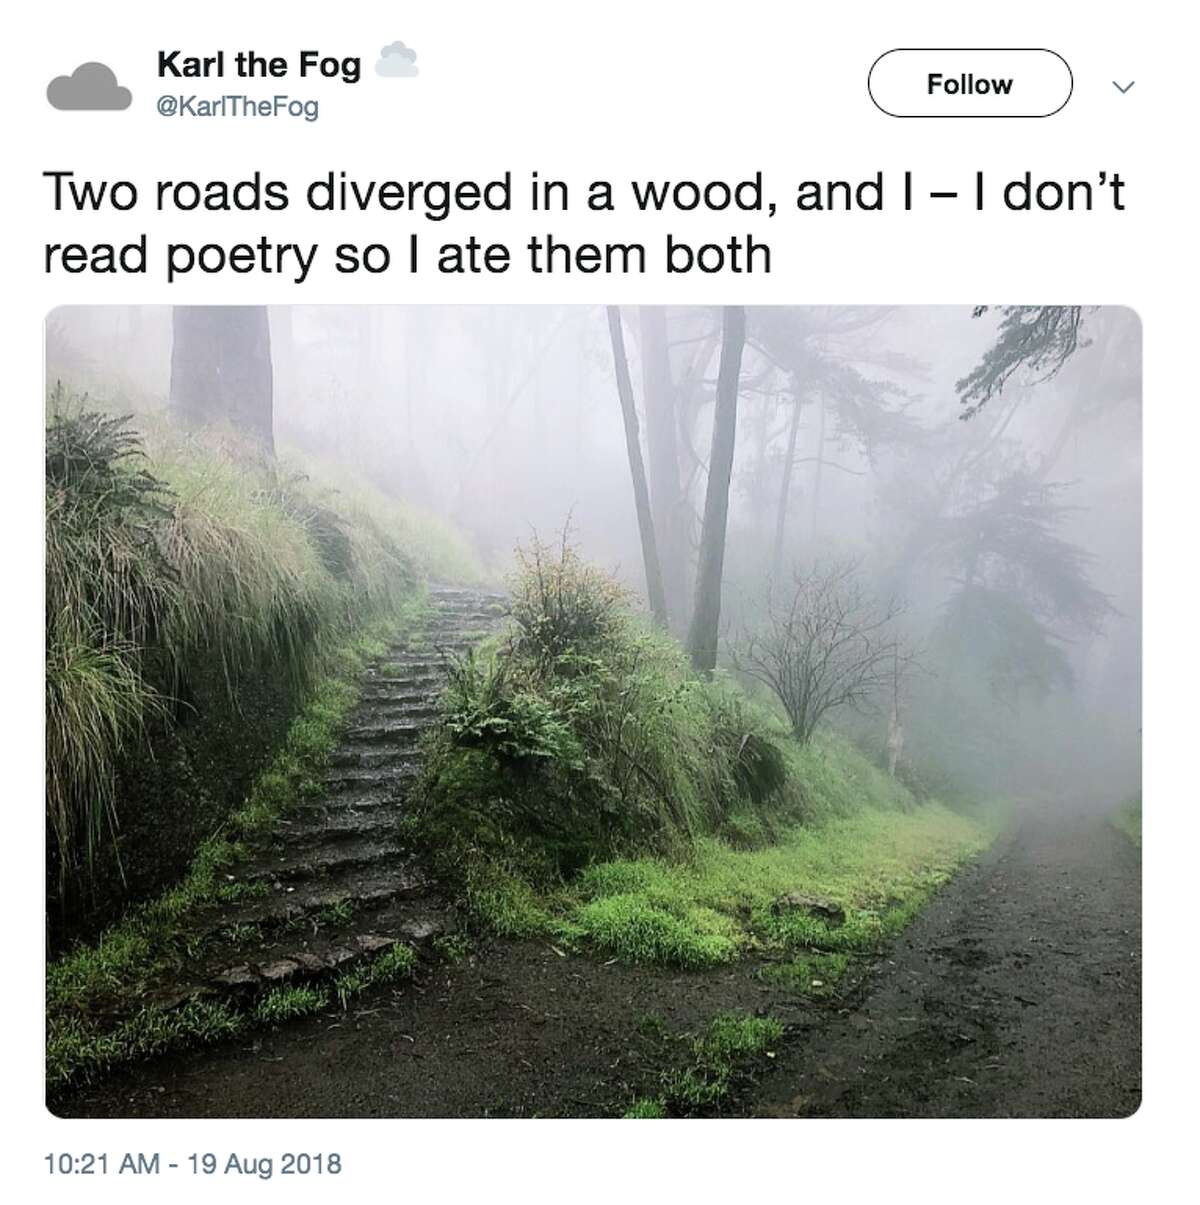 The twitter account @KarltheFog tracks San Francisco's fog and makes a lot of clever jokes about the weather.